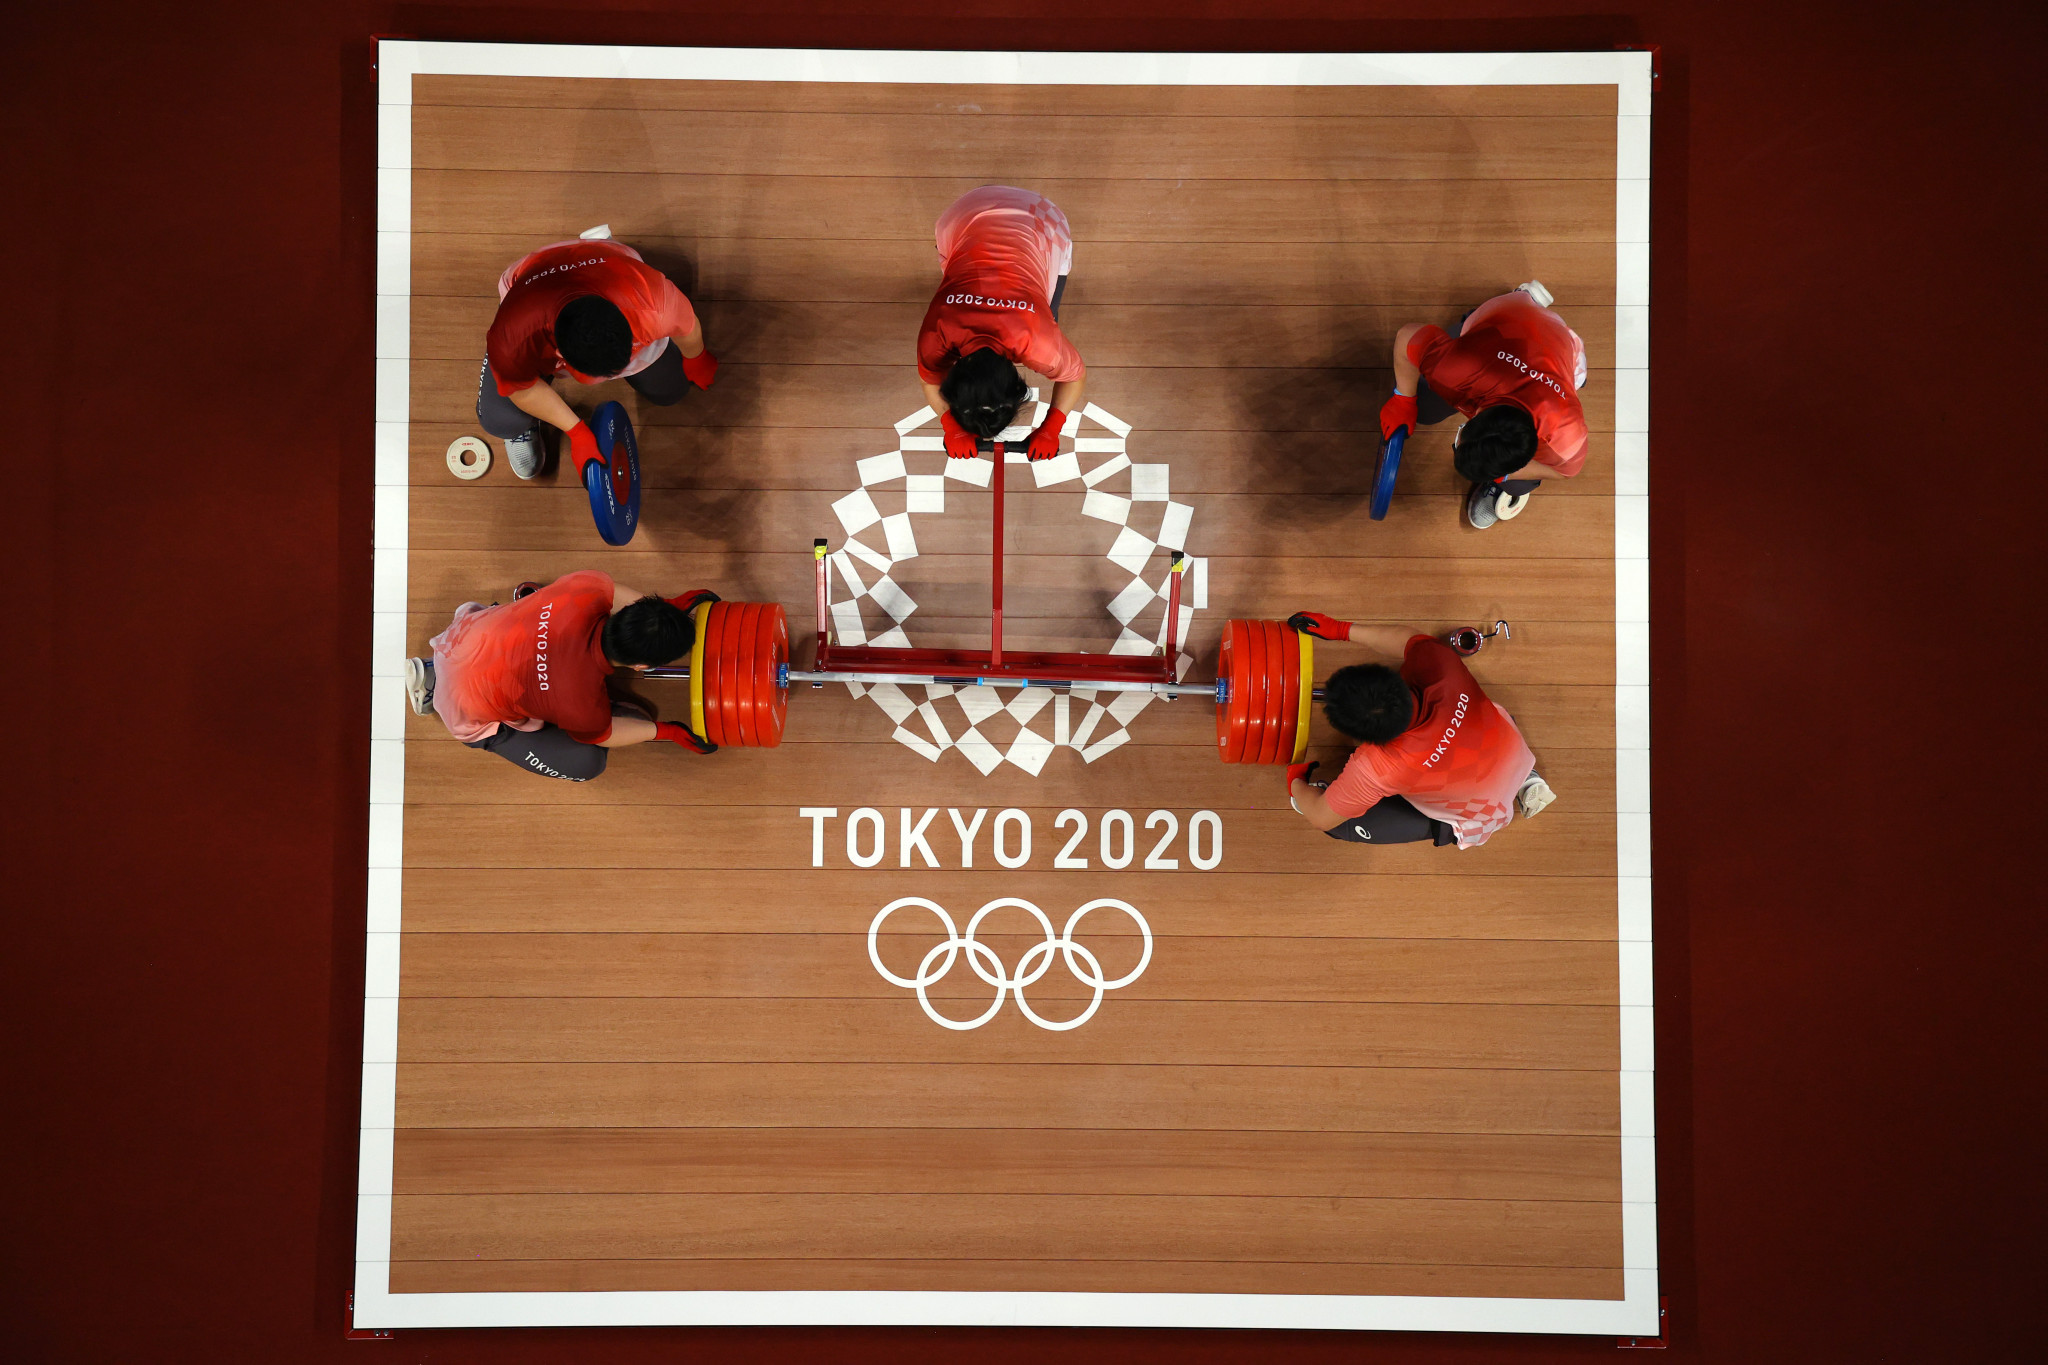 Weightlifting was on the Tokyo 2020 programme but is at risk of being excluded come Paris 2024 ©Getty Images